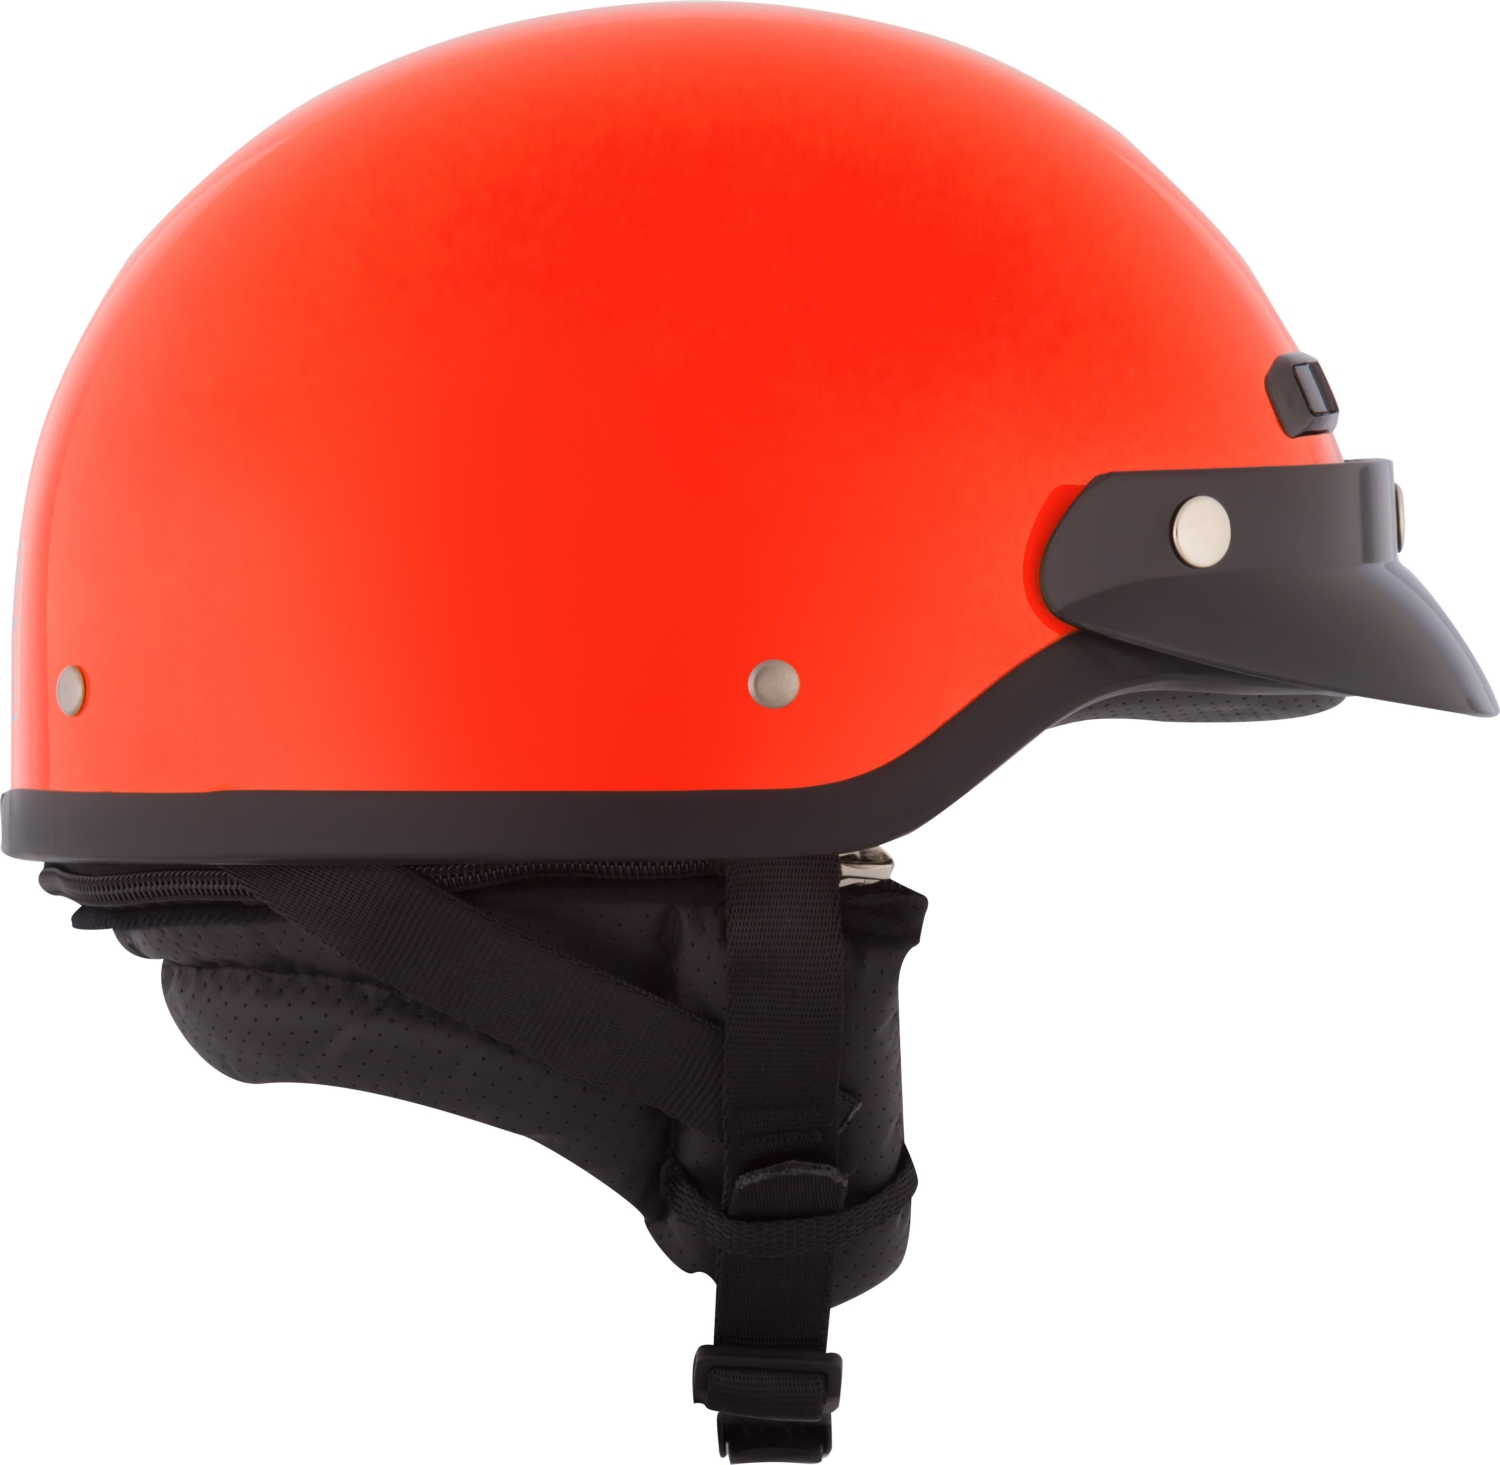 CKX Solid VG500 Half Helmet No Lens Available